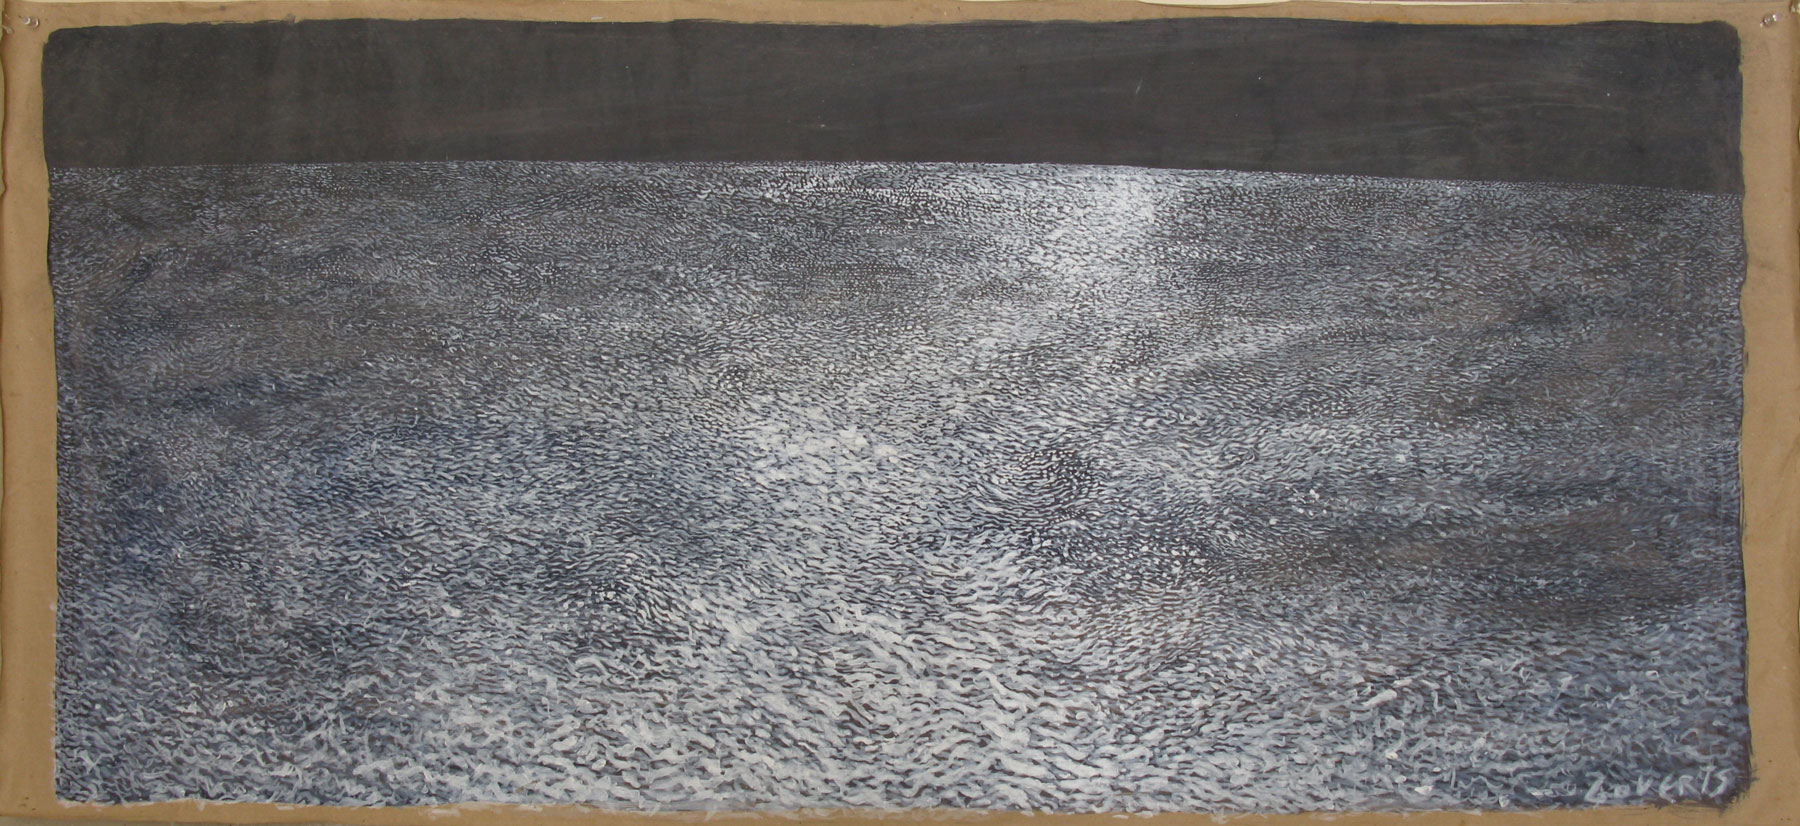 Moonscape 3 | 135x60cm | acrillic on craft